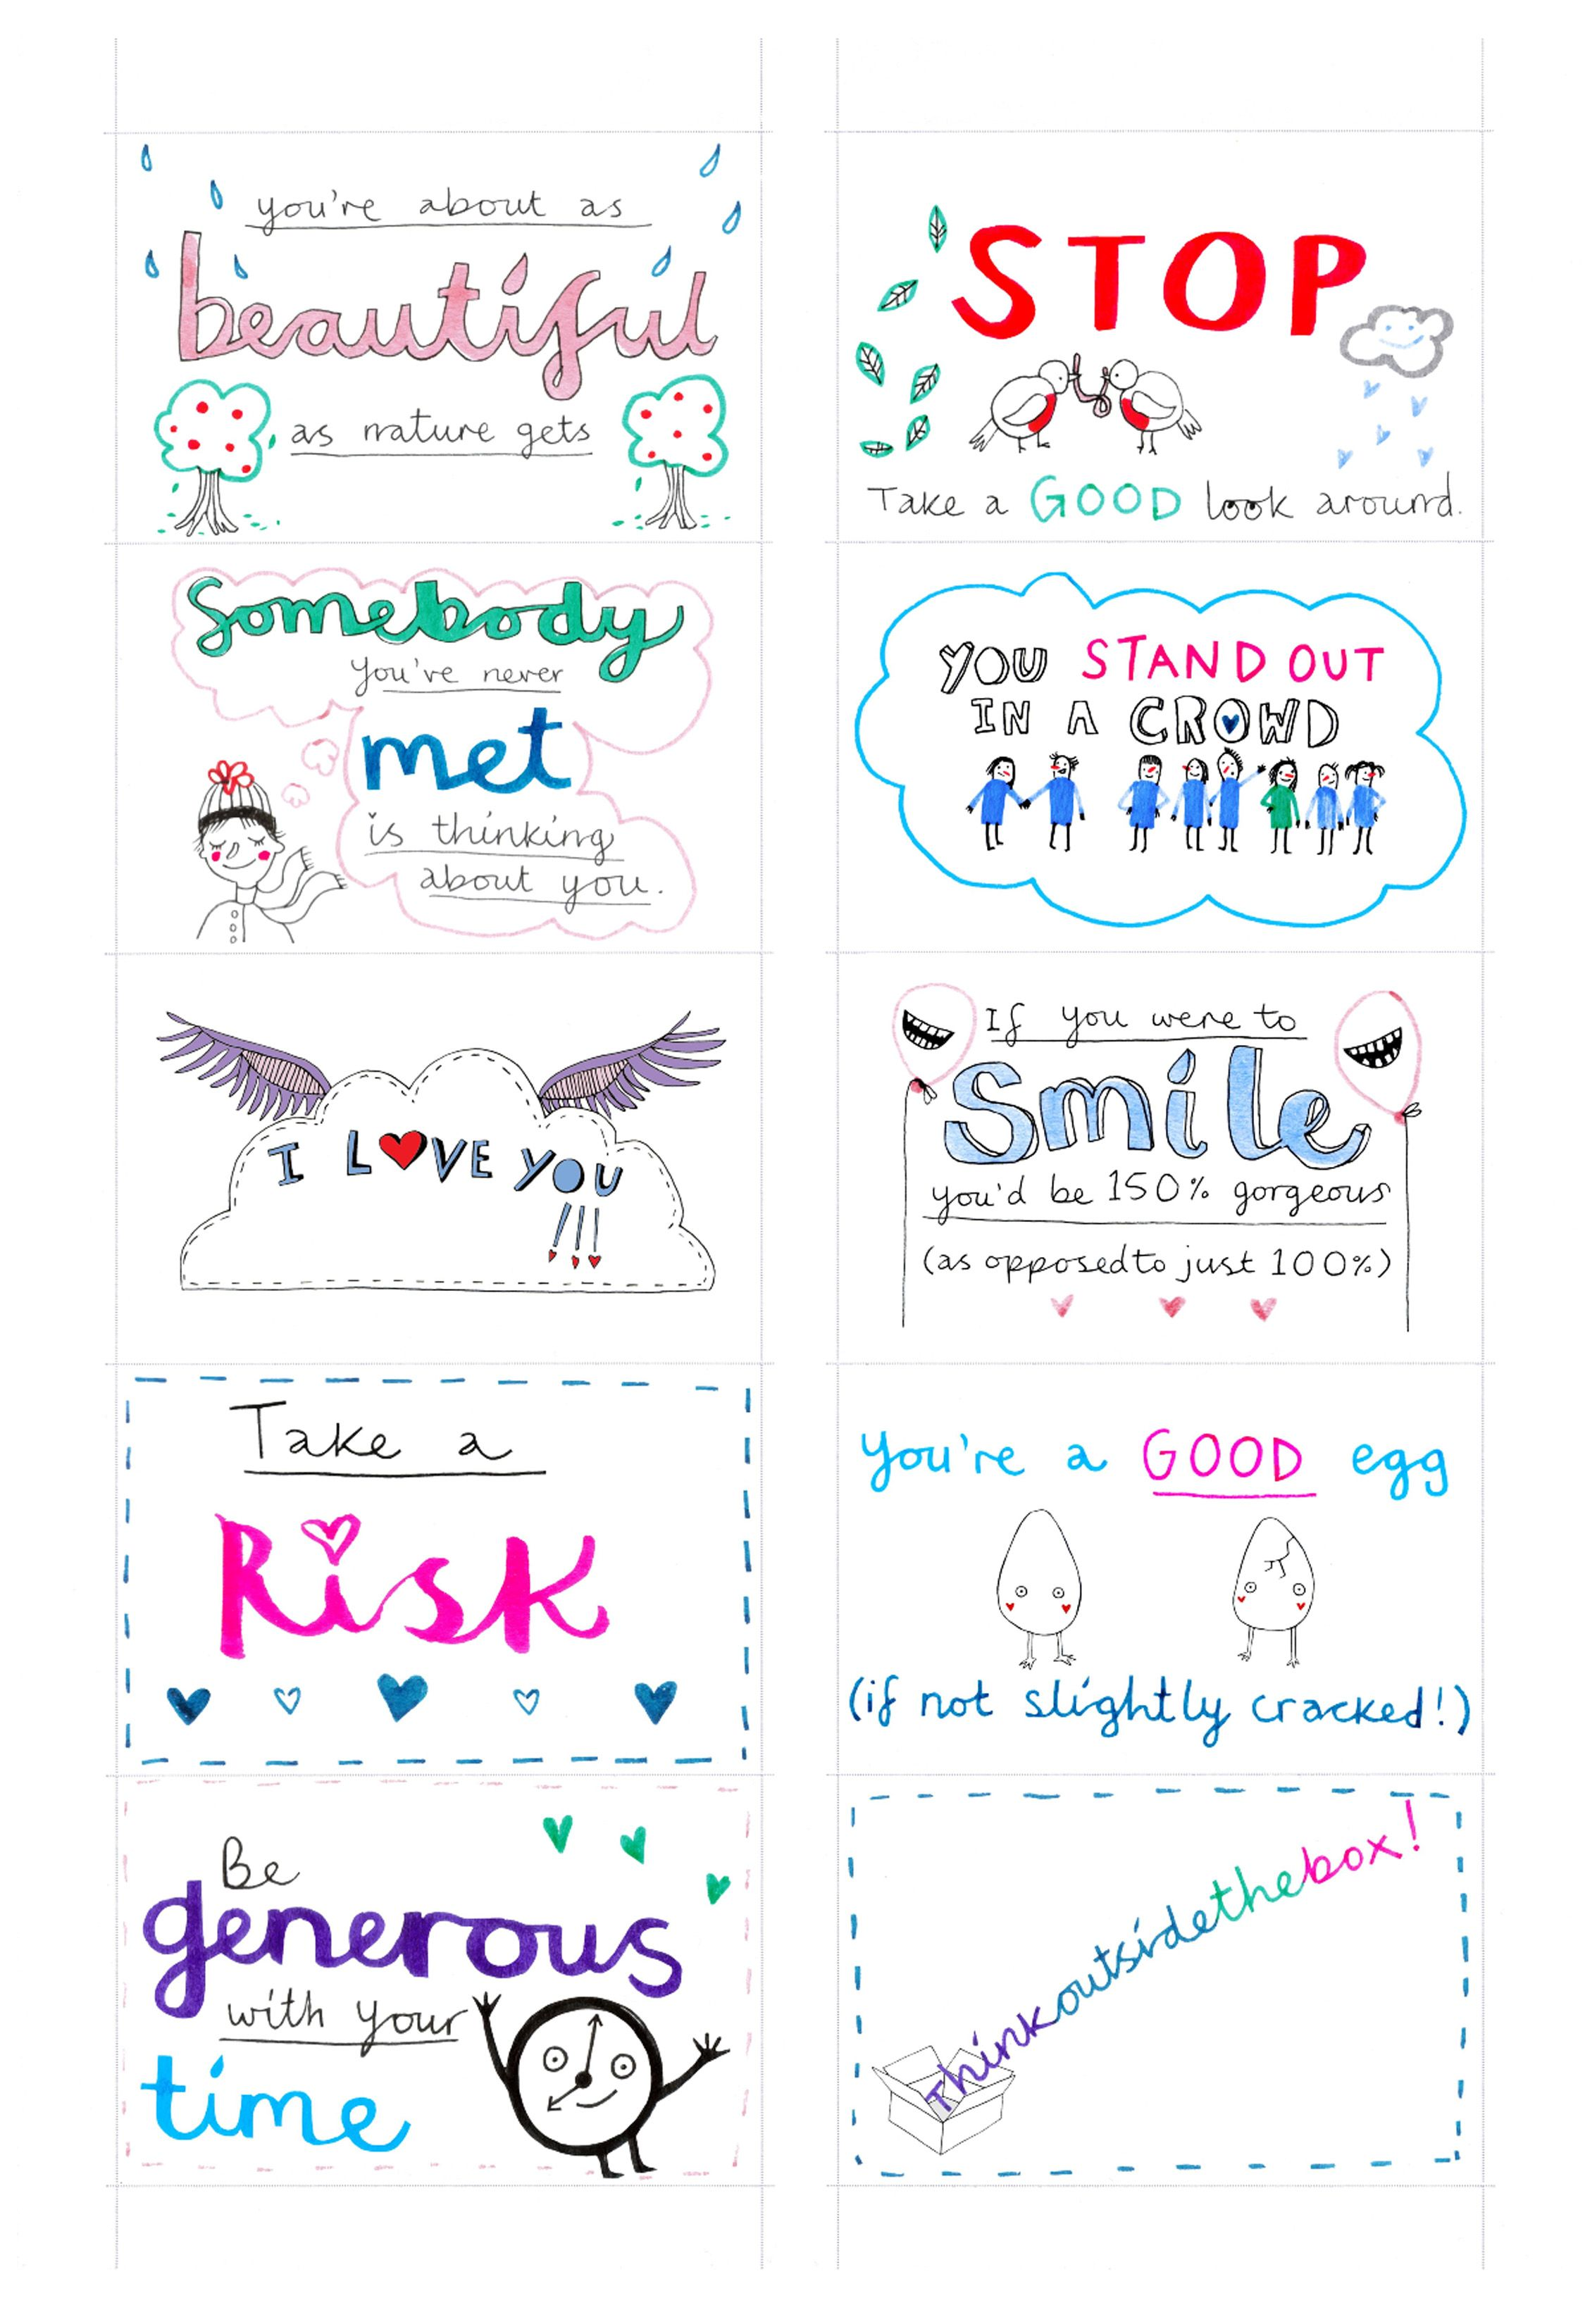 image about Random Act of Kindness Printable named random functions of kindness printable Playing cards, Paper